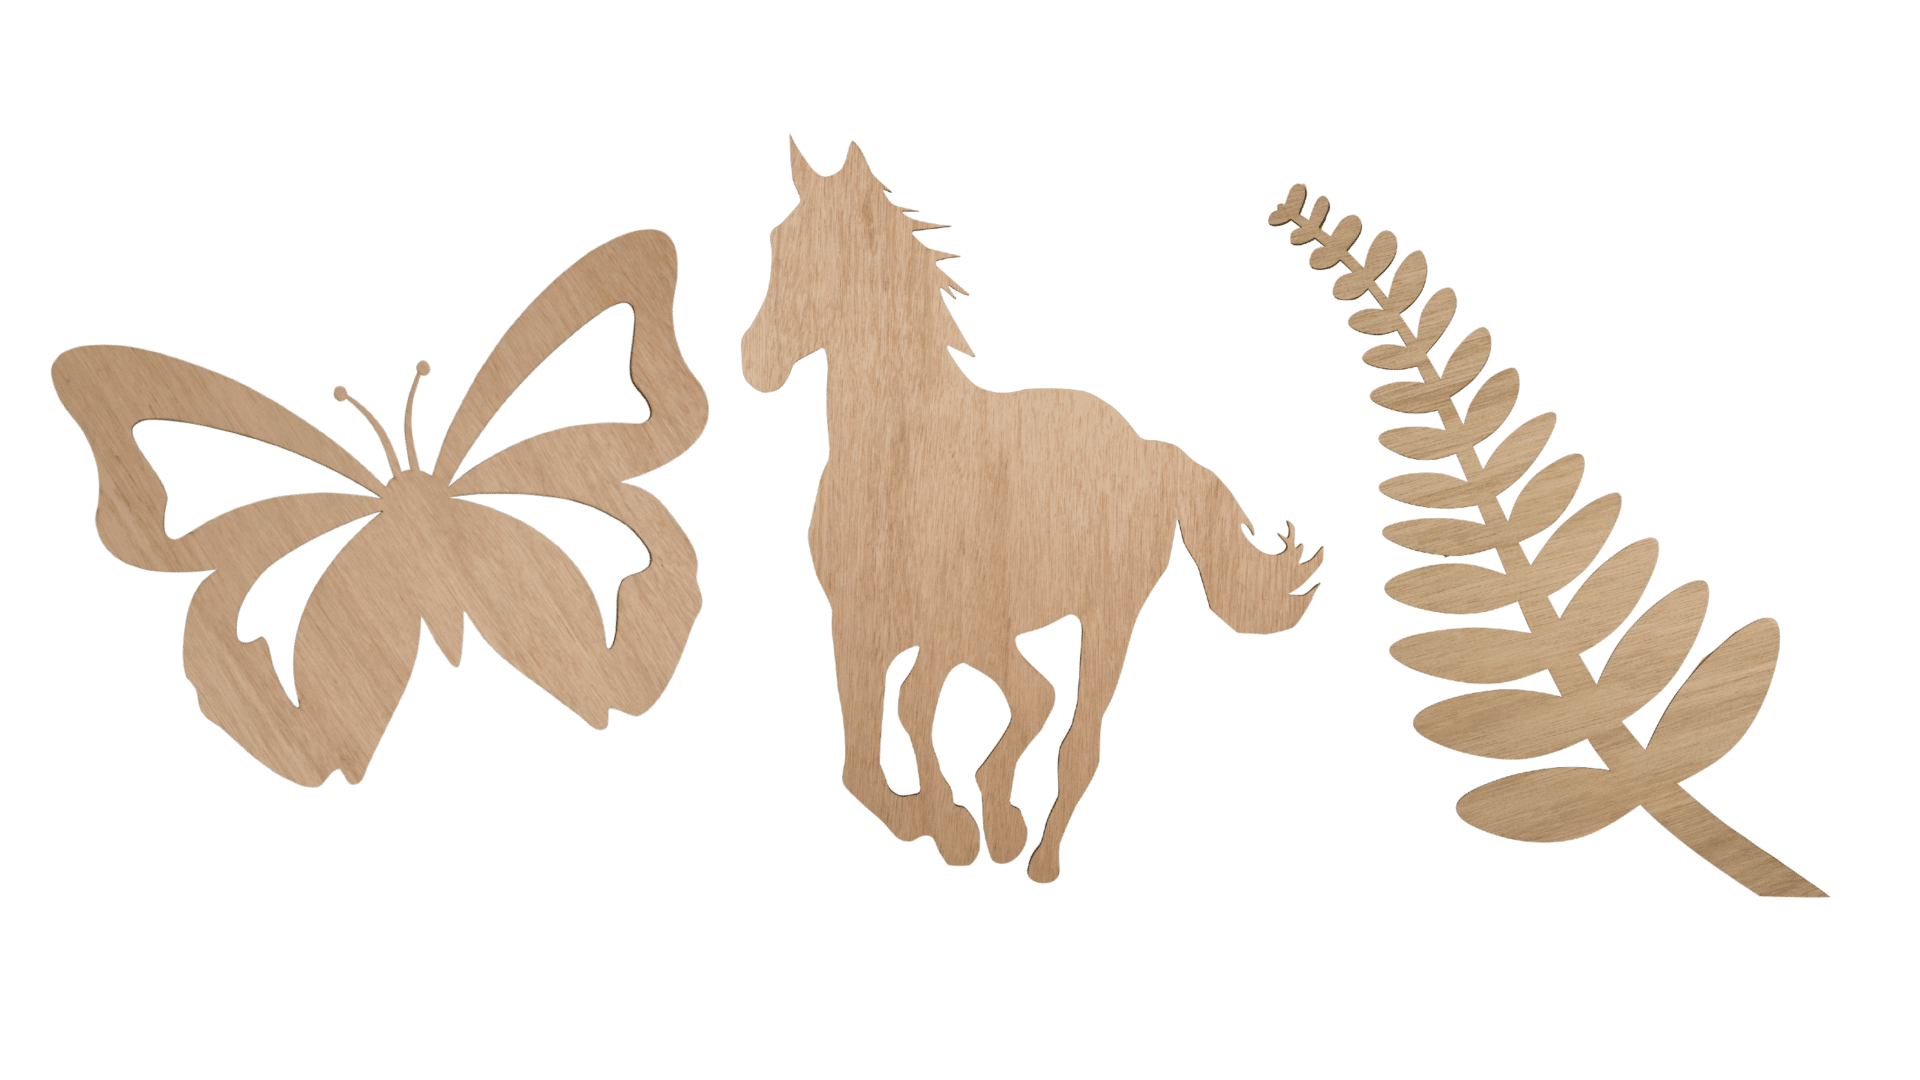 Butterfly, horse and fern